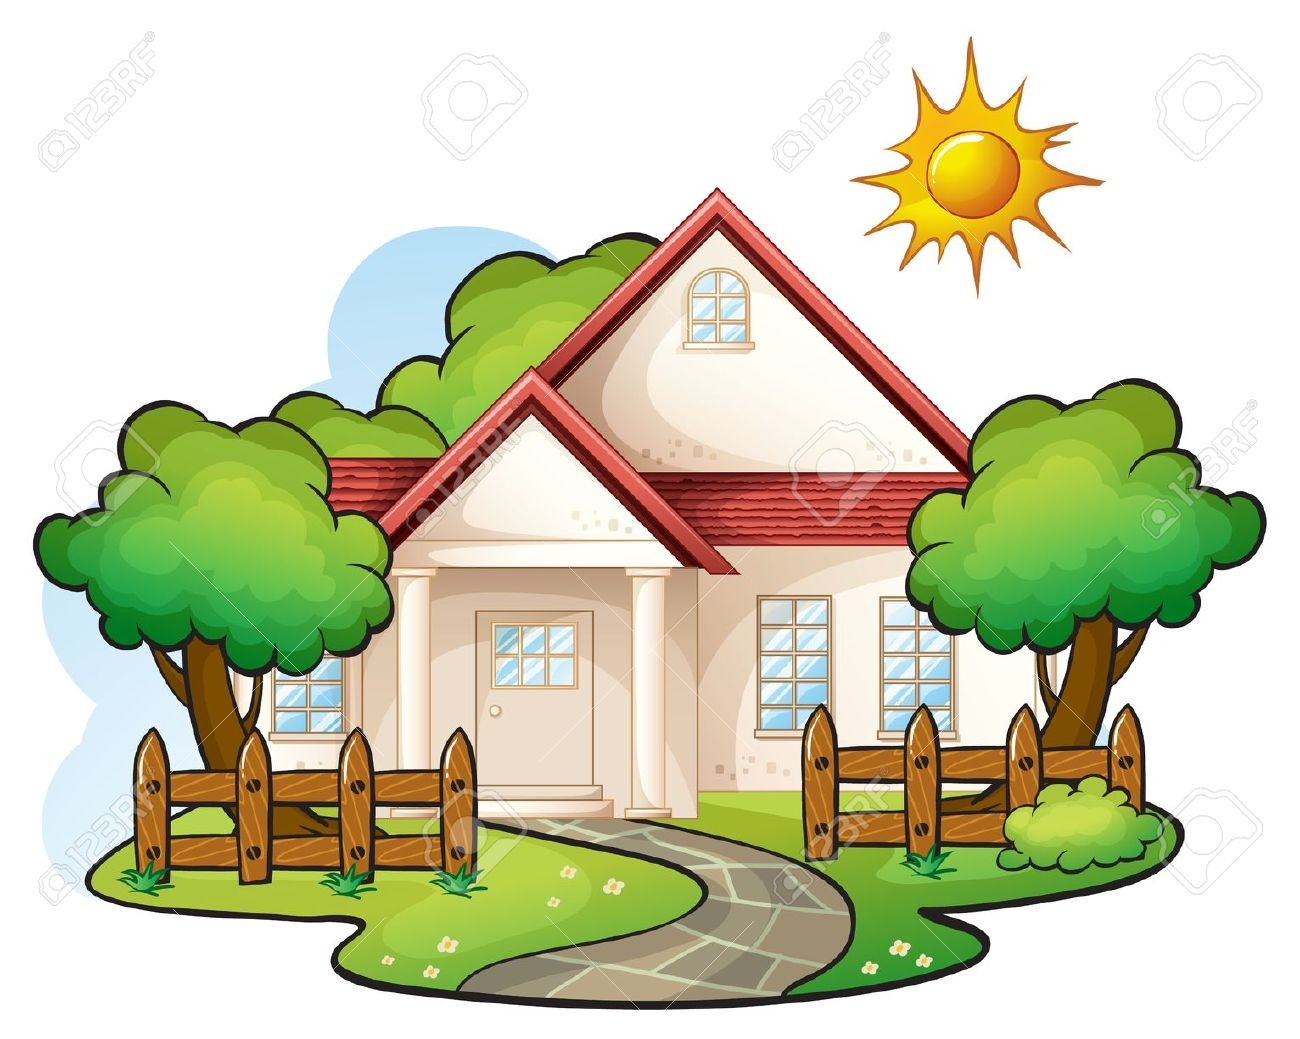 Free download best on. Landscape clipart house